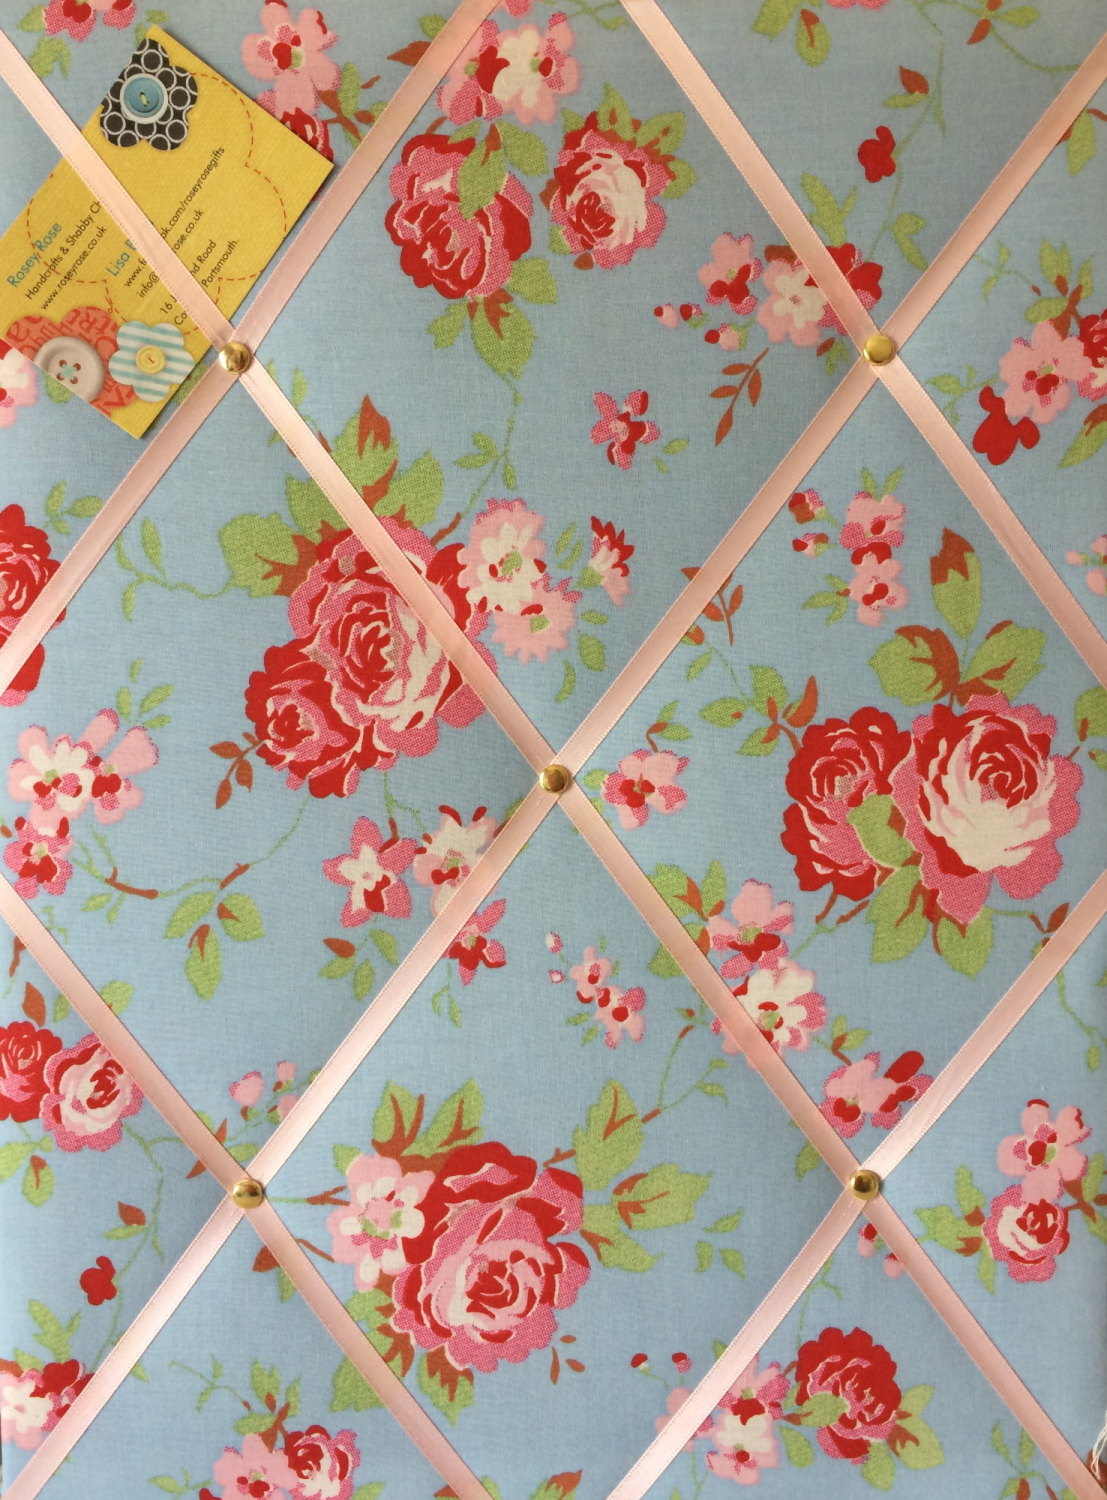 Medium 40x30cm Cath Kidston / IKEA Blue Rosali Rose Hand Crafted Fabric Not